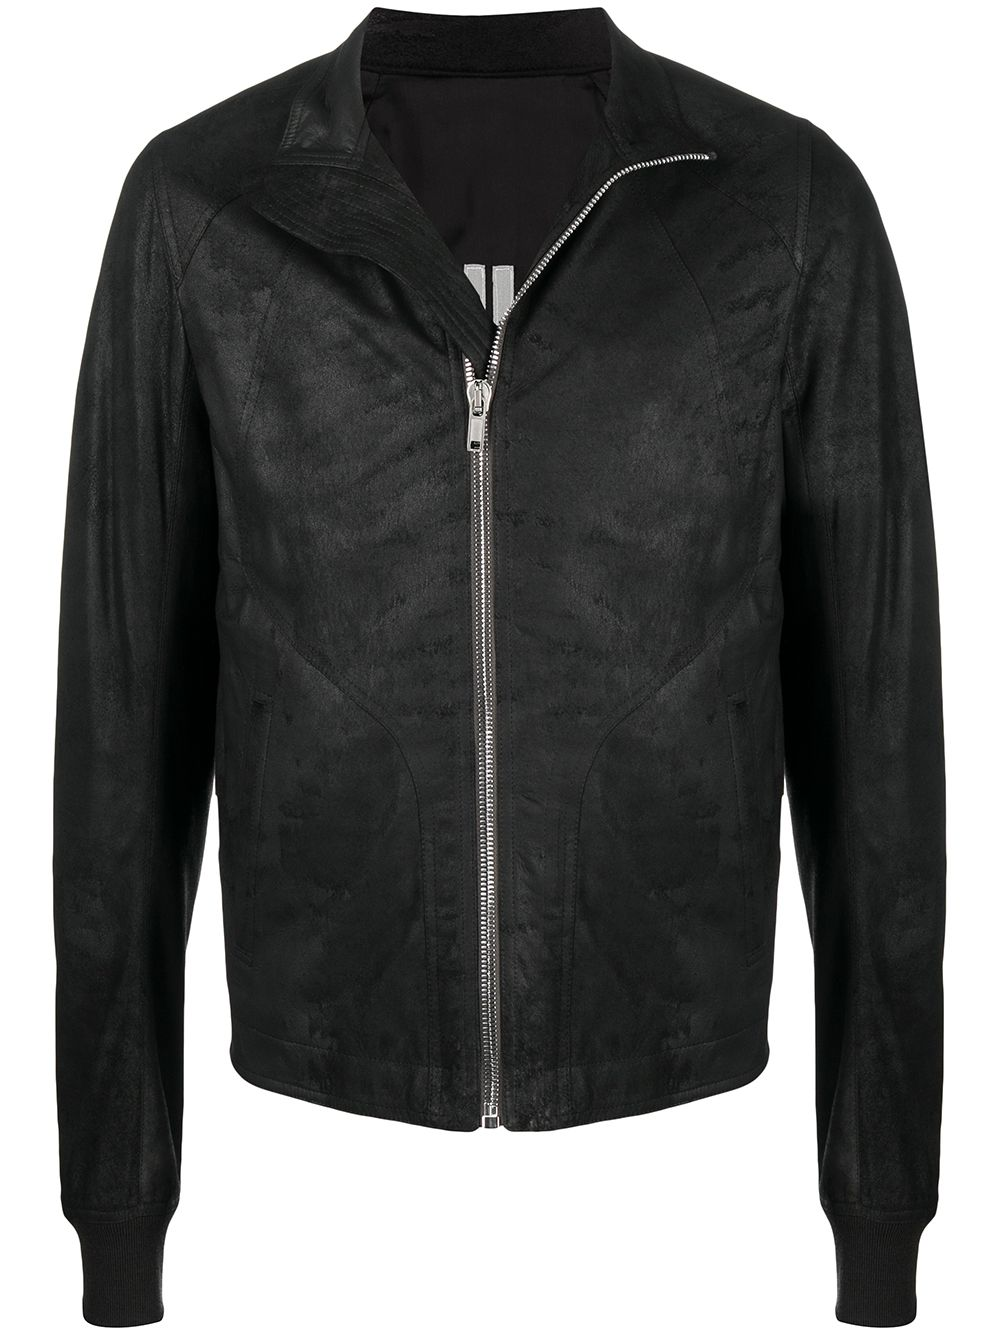 Rick Owens giacca in pelle uomo RICK OWENS | Giacche | RU21S6761 LBA09